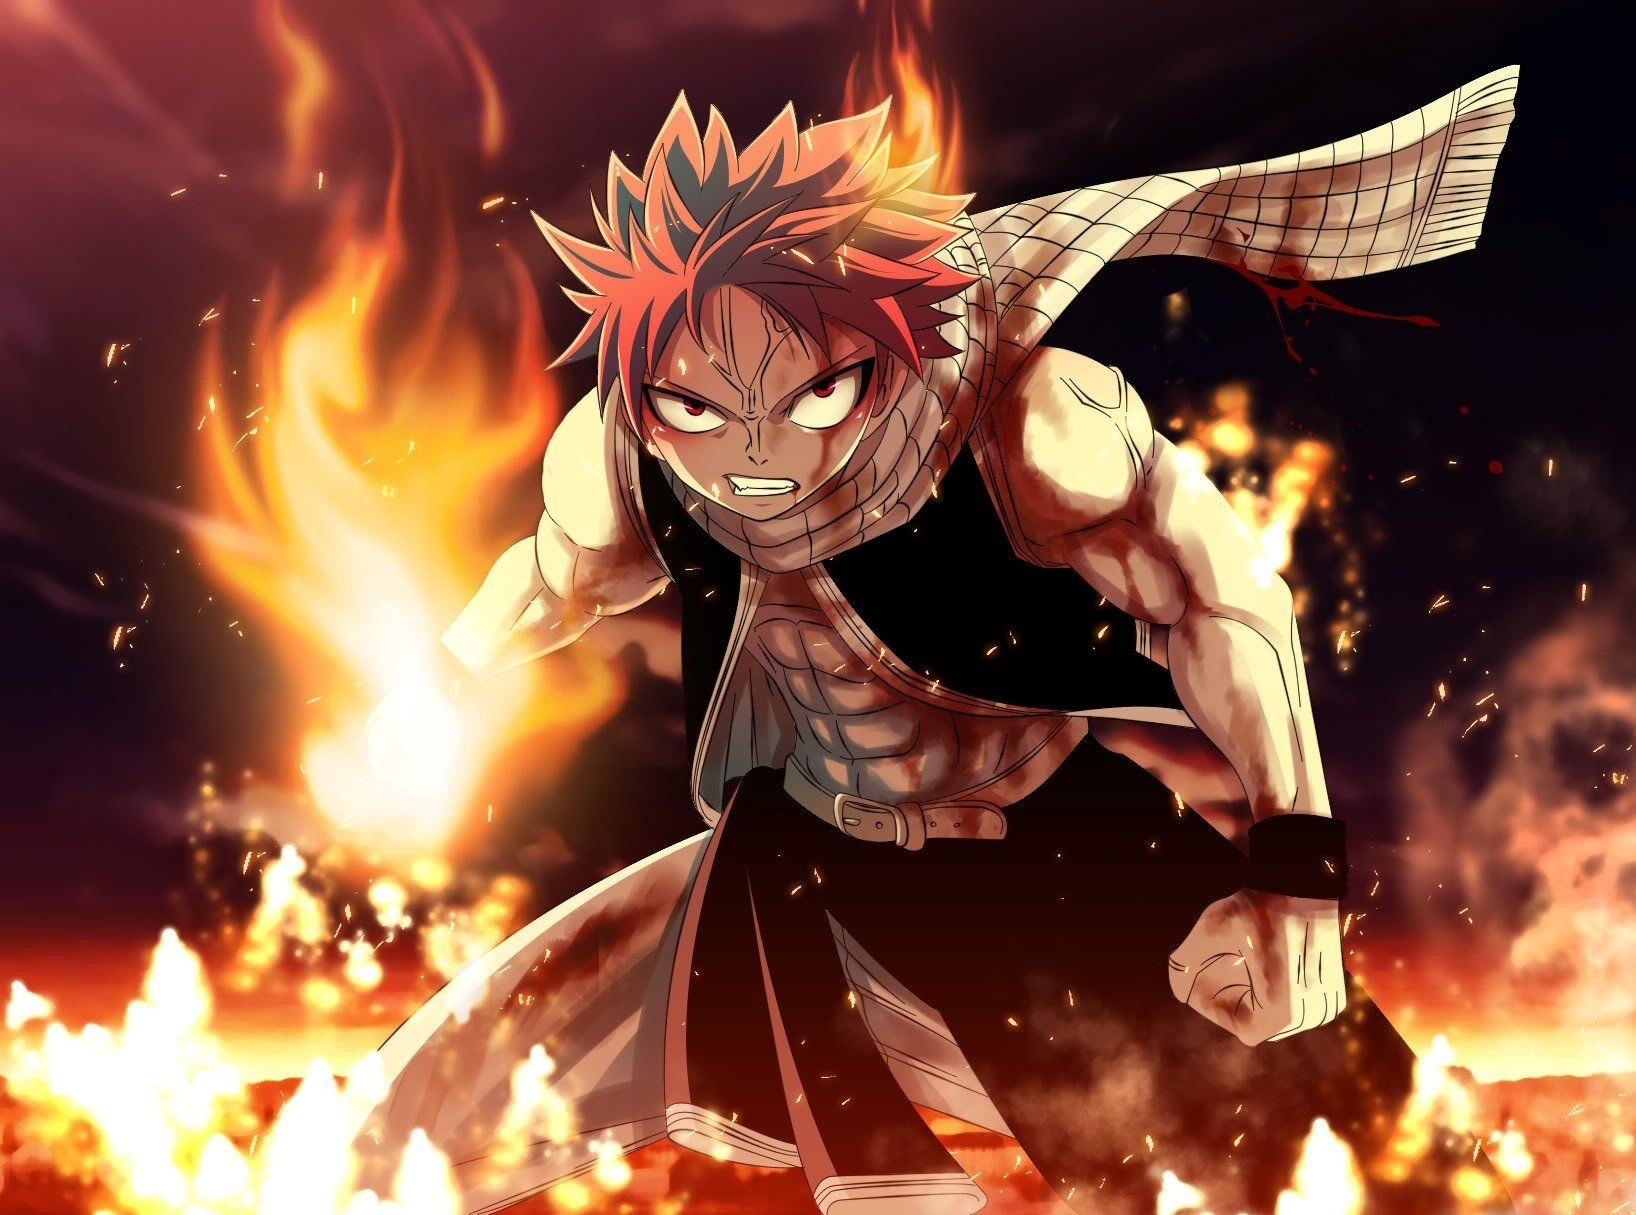 Fairy Tail Anime Wallpapers Top Free Fairy Tail Anime